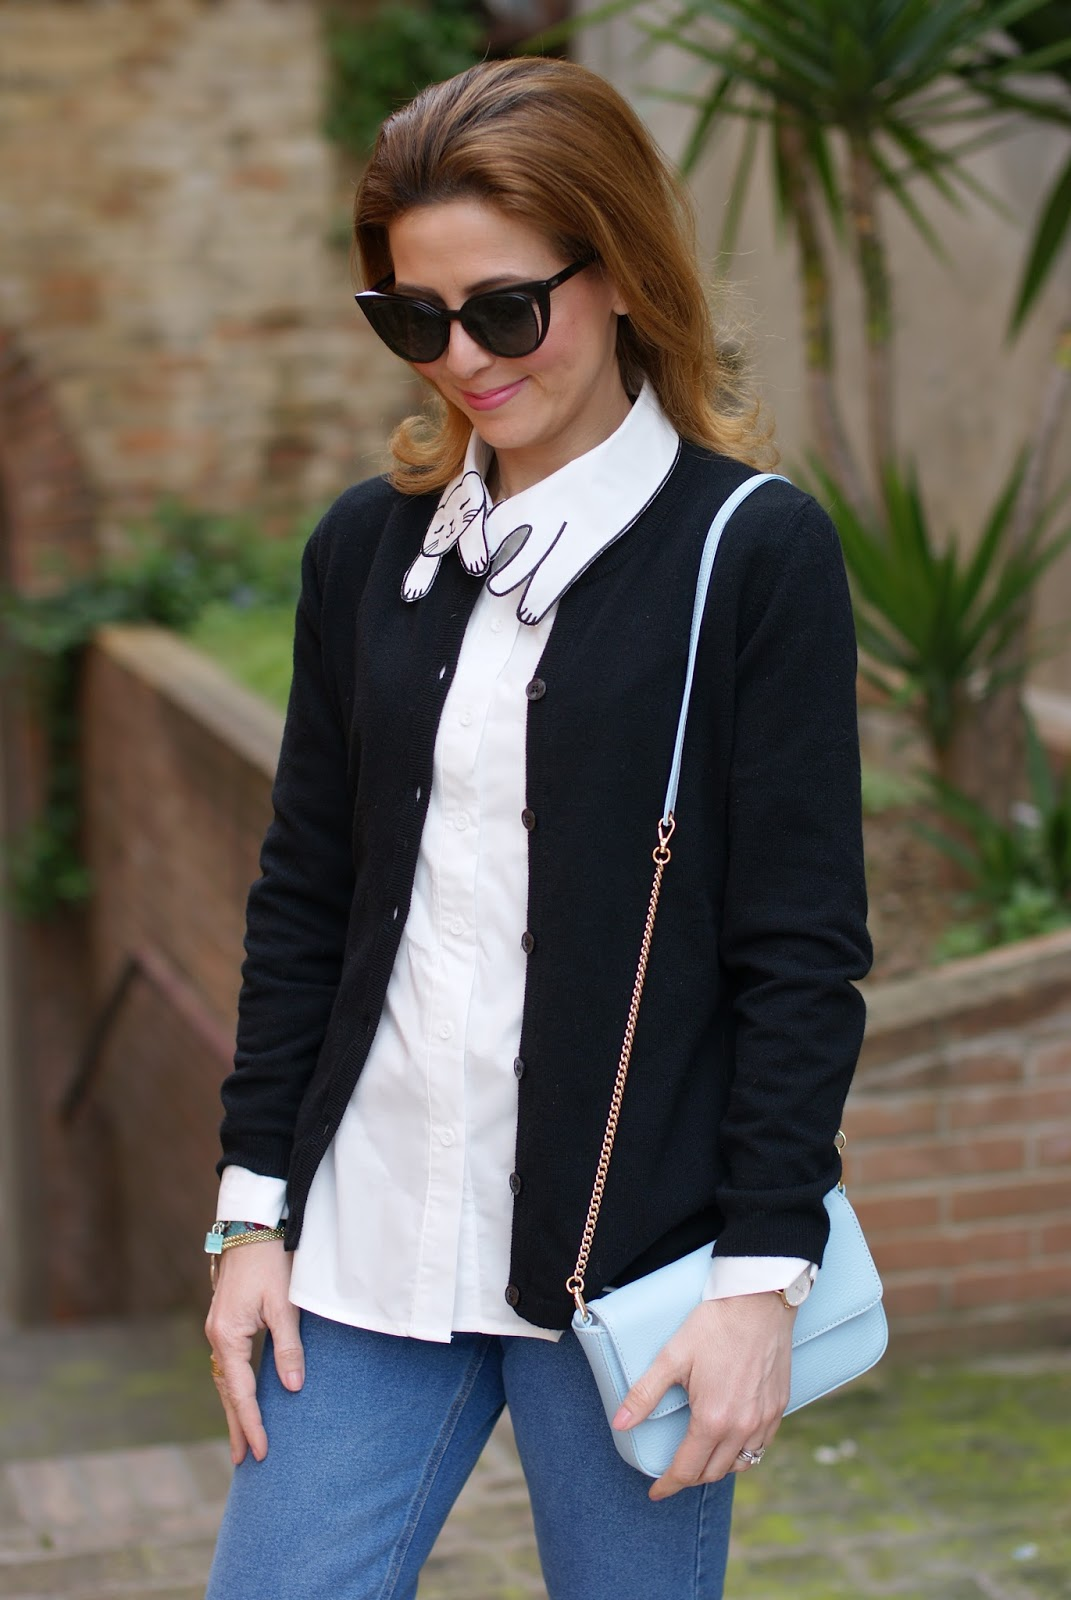 White cat collar shirt, Fendi sunglasses on Fashion and Cookies fashion blog, fashion blogger style